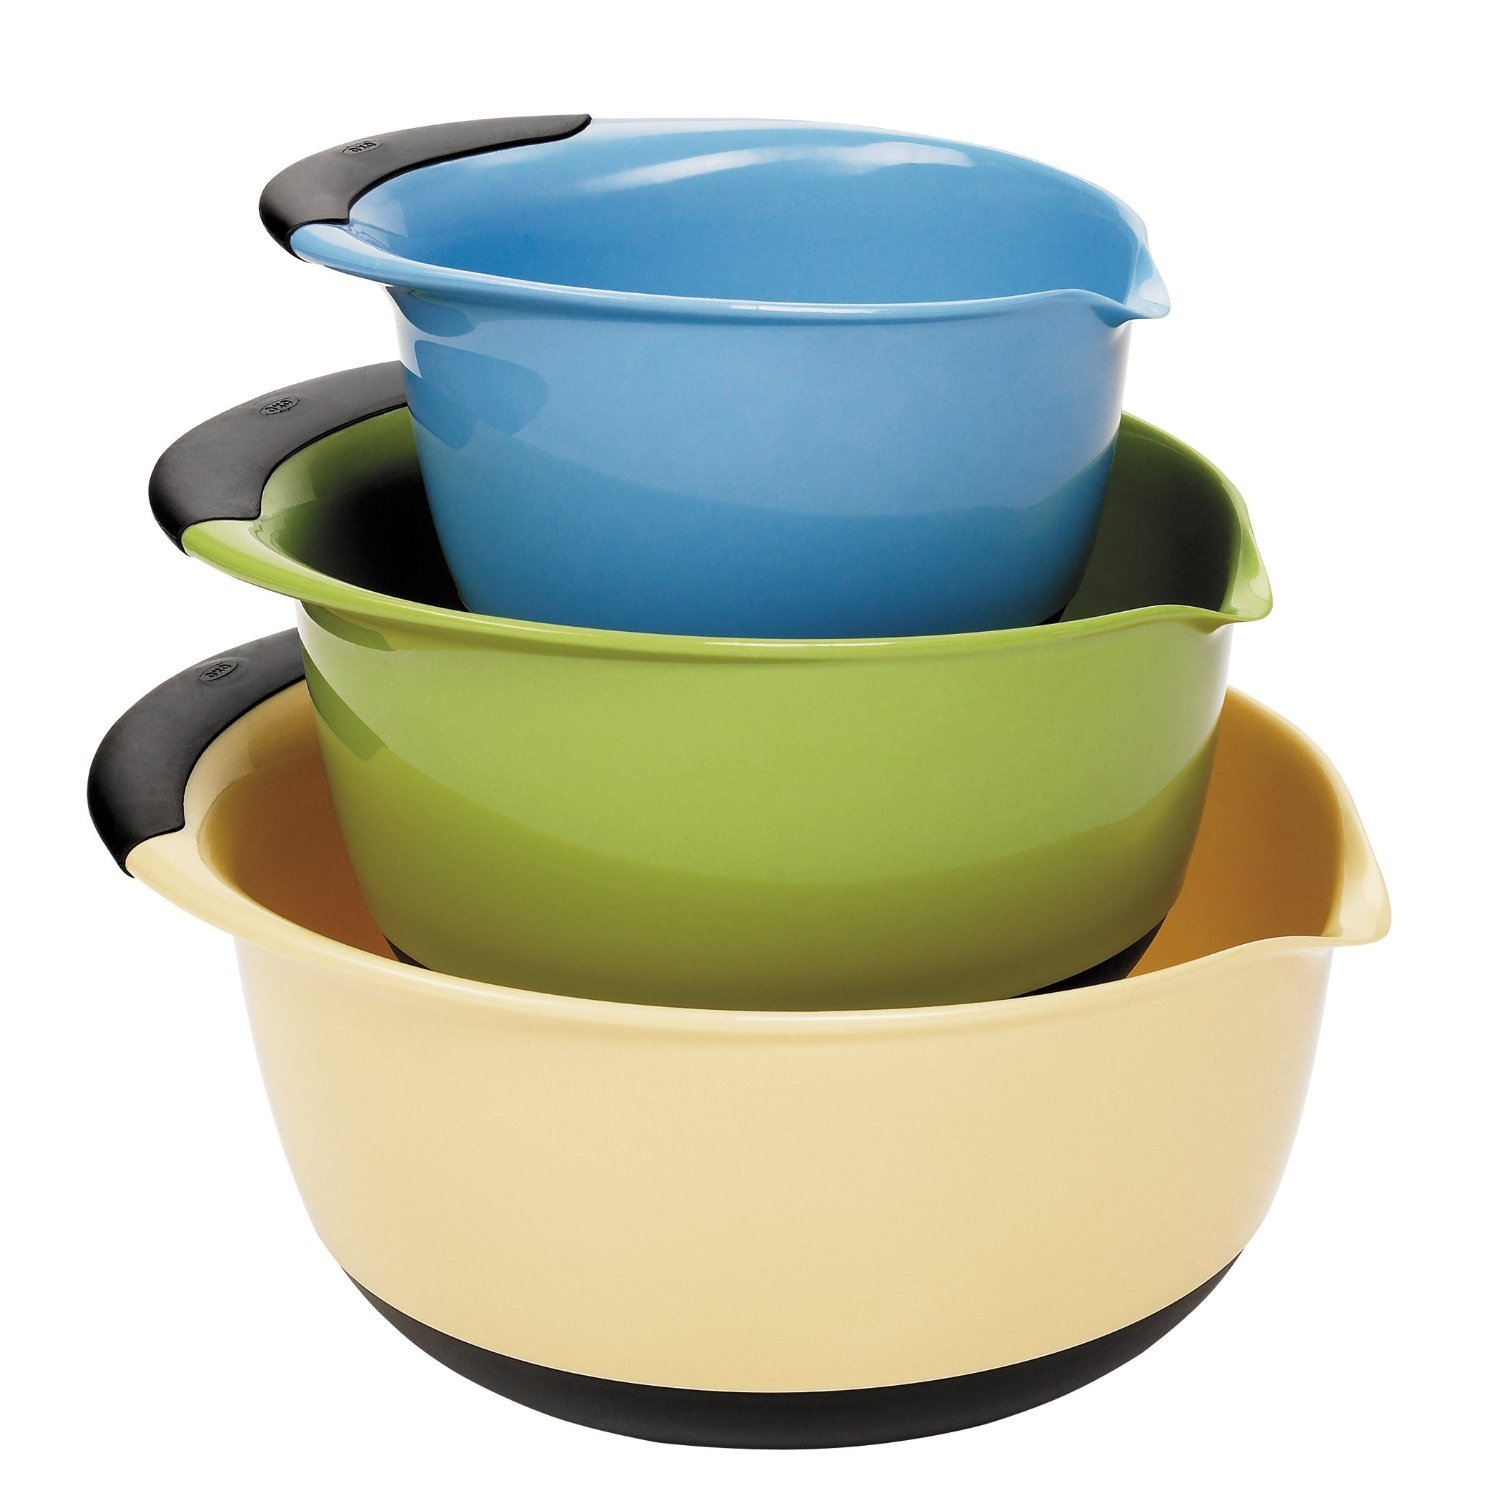 OXO Good Grips 3-Piece Mixing Bowl Set, Blue/Green/Yellow by OXO (Image #1)